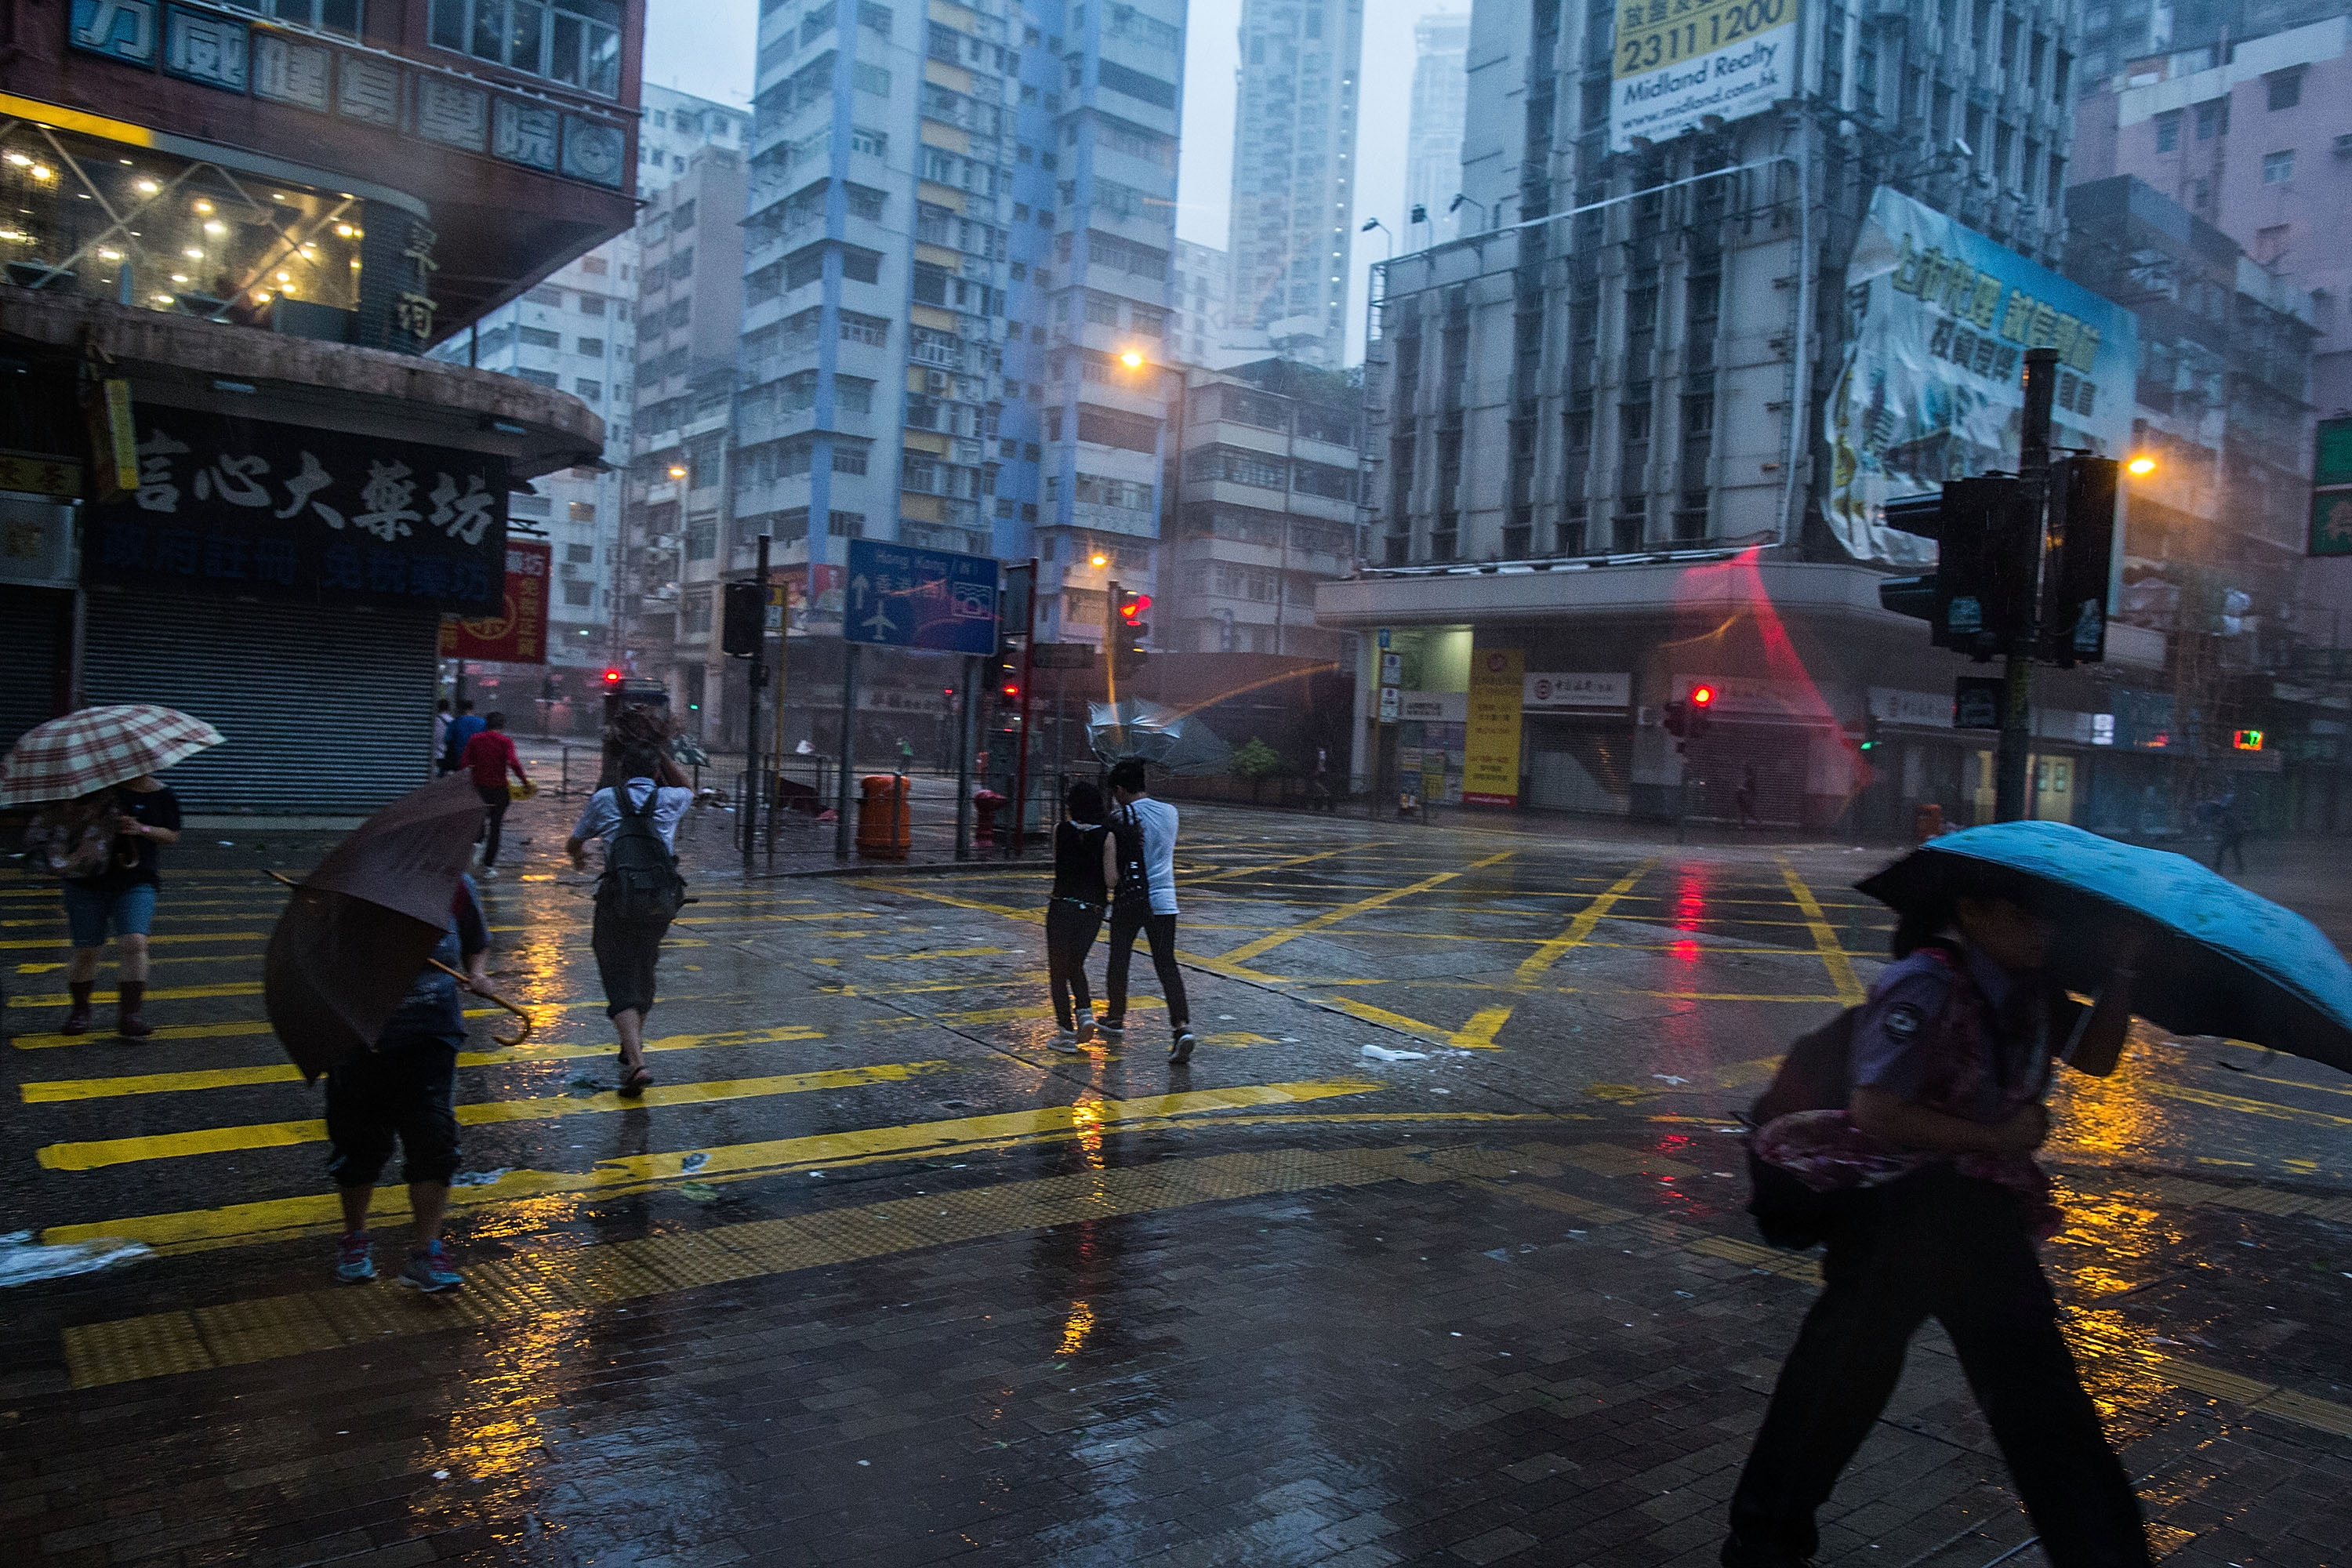 Pedestrians caught in high winds caused by a typhoon. Photo by Lam Yik Fei/Getty Images.